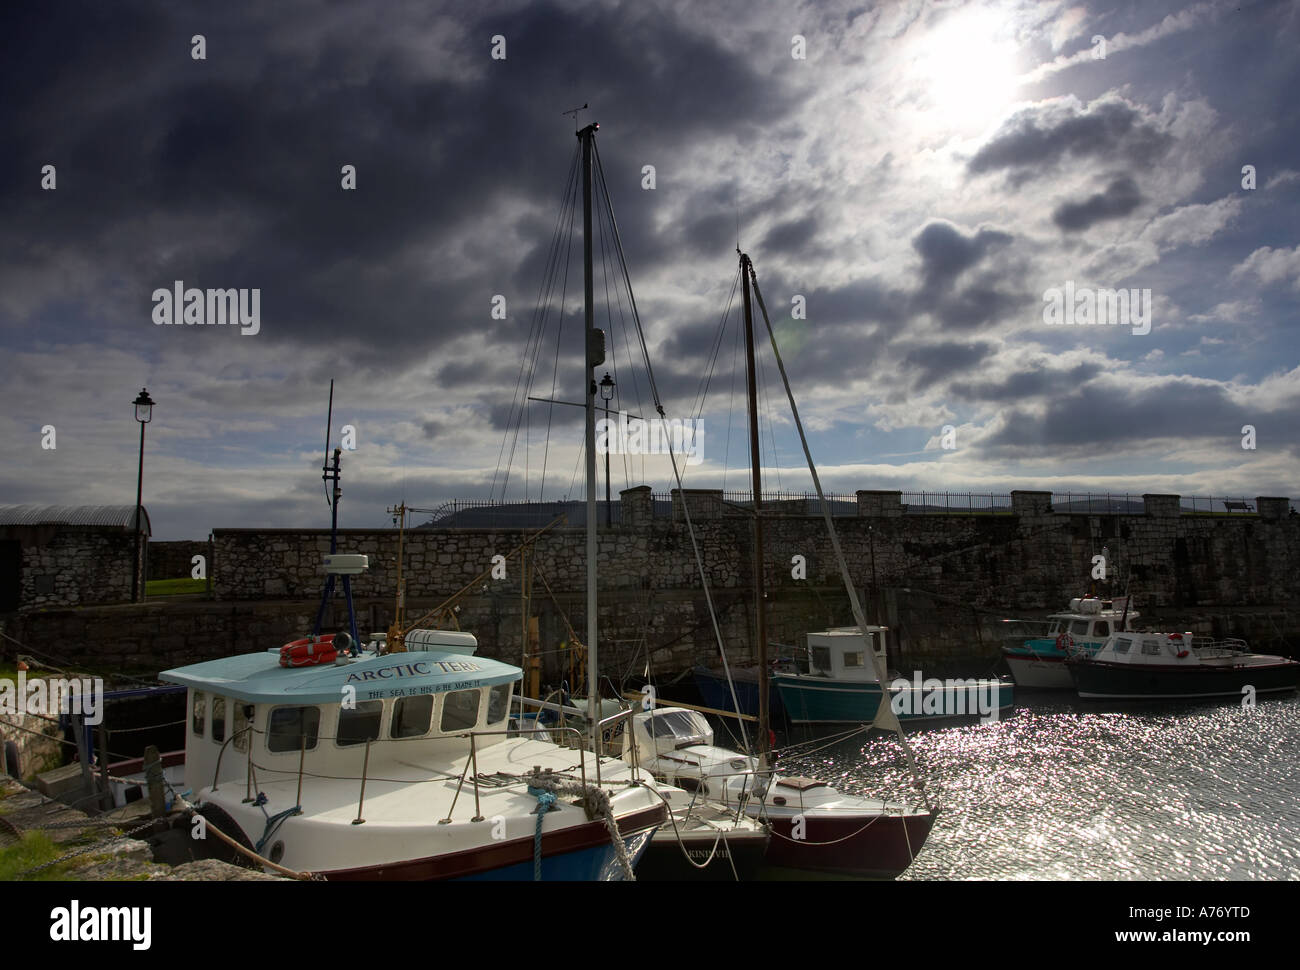 fishing boats tied up in the harbour under stormy skies Carnlough Village county Antrim Northern Ireland - Stock Image